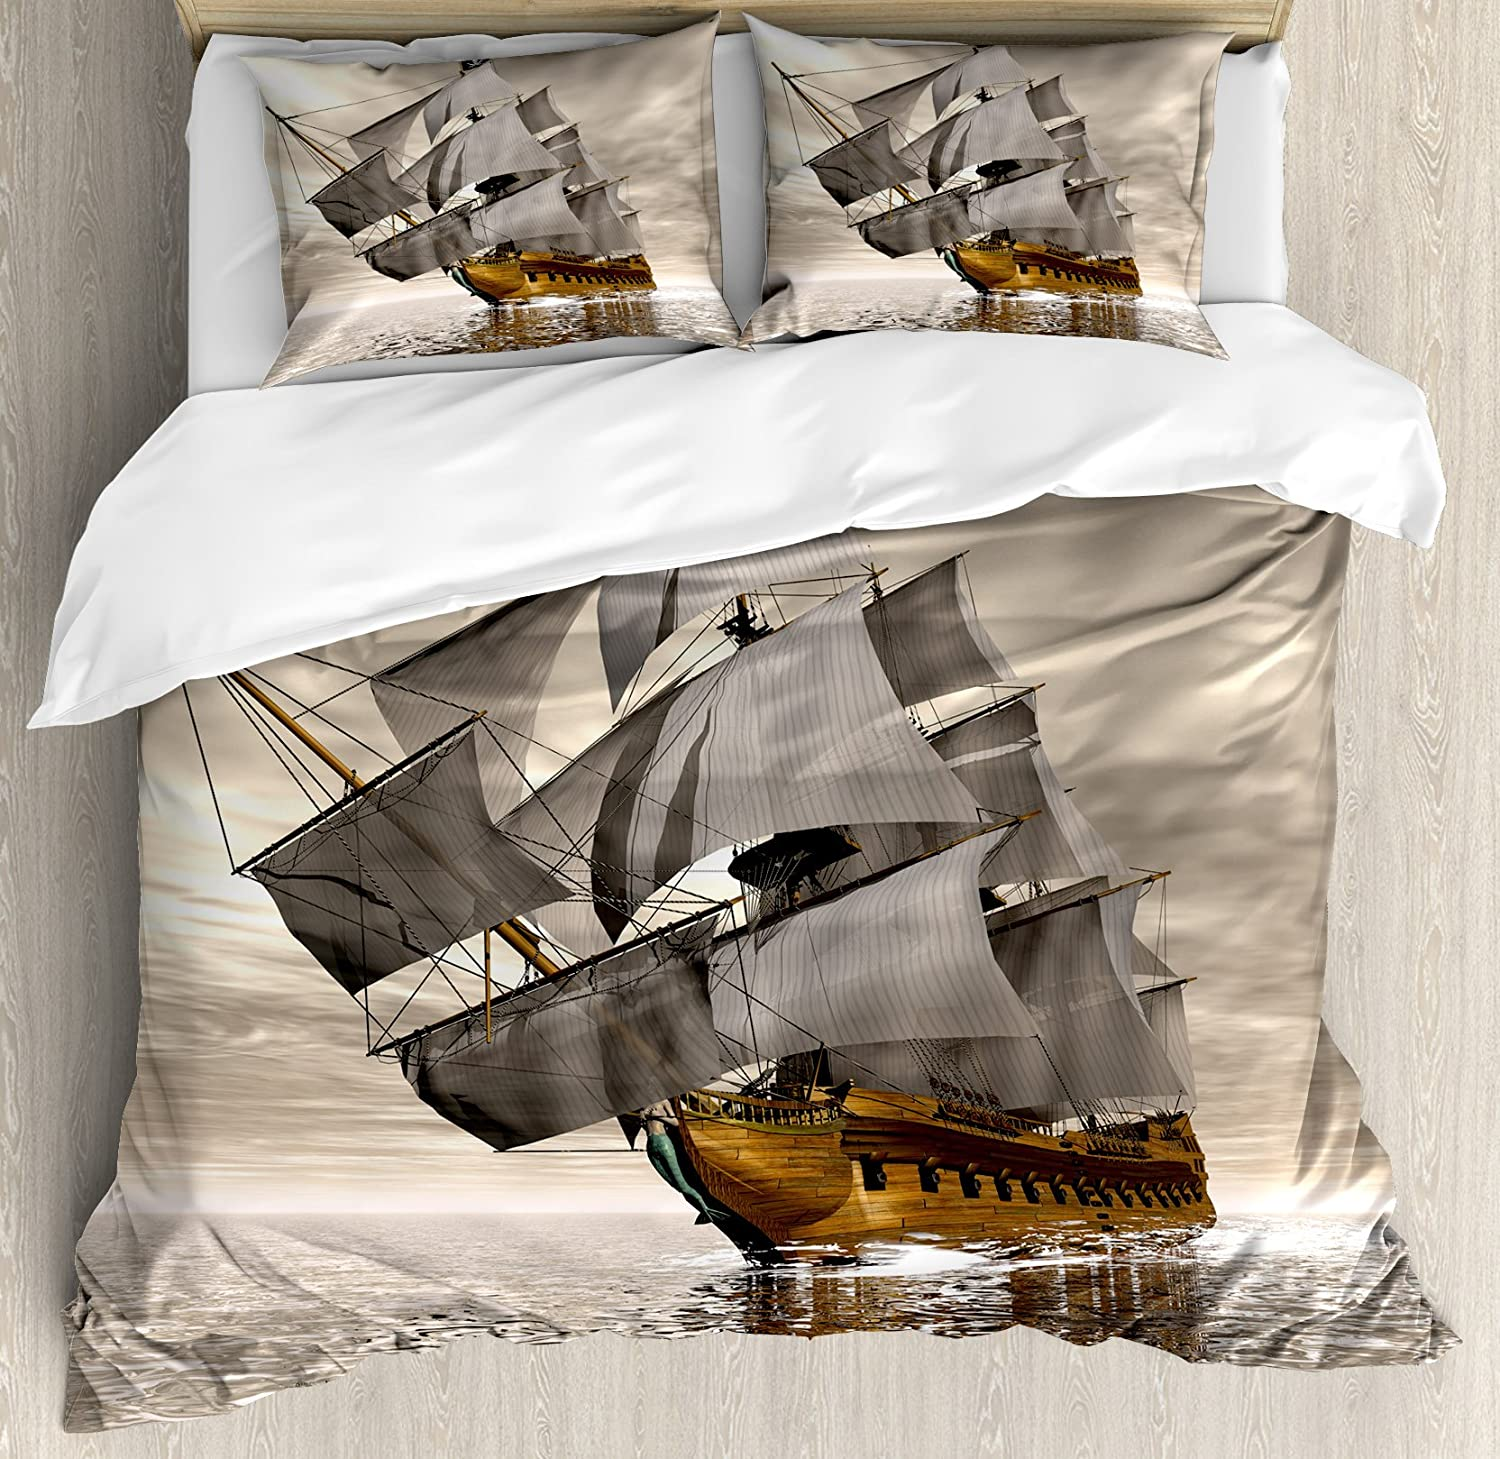 Ambesonne Ocean Duvet Cover Set, 3D Style Pirate Ship Sea Historic Vessel Cloudy Sky Voyage Exploration Theme, Decorative 3 Piece Bedding Set with 2 Pillow Shams, King Size, Coffee Grey